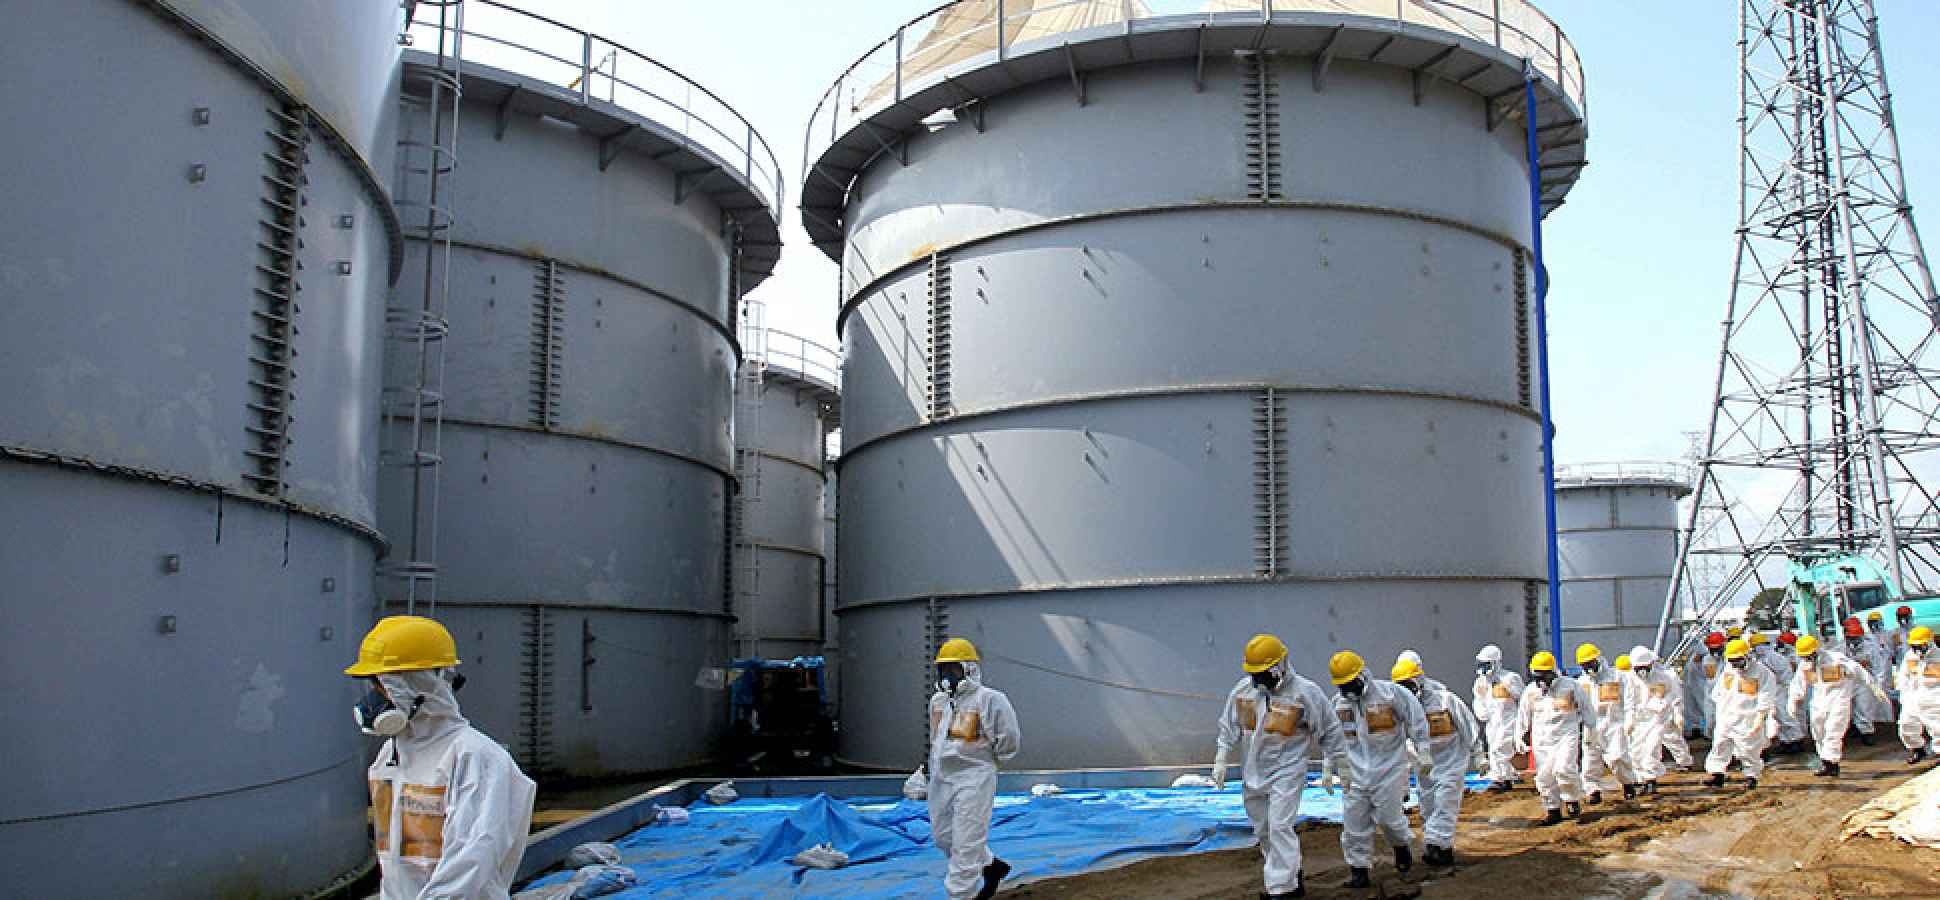 Leading in Crisis: 3 Tips From the Fukushima Nuclear Disaster